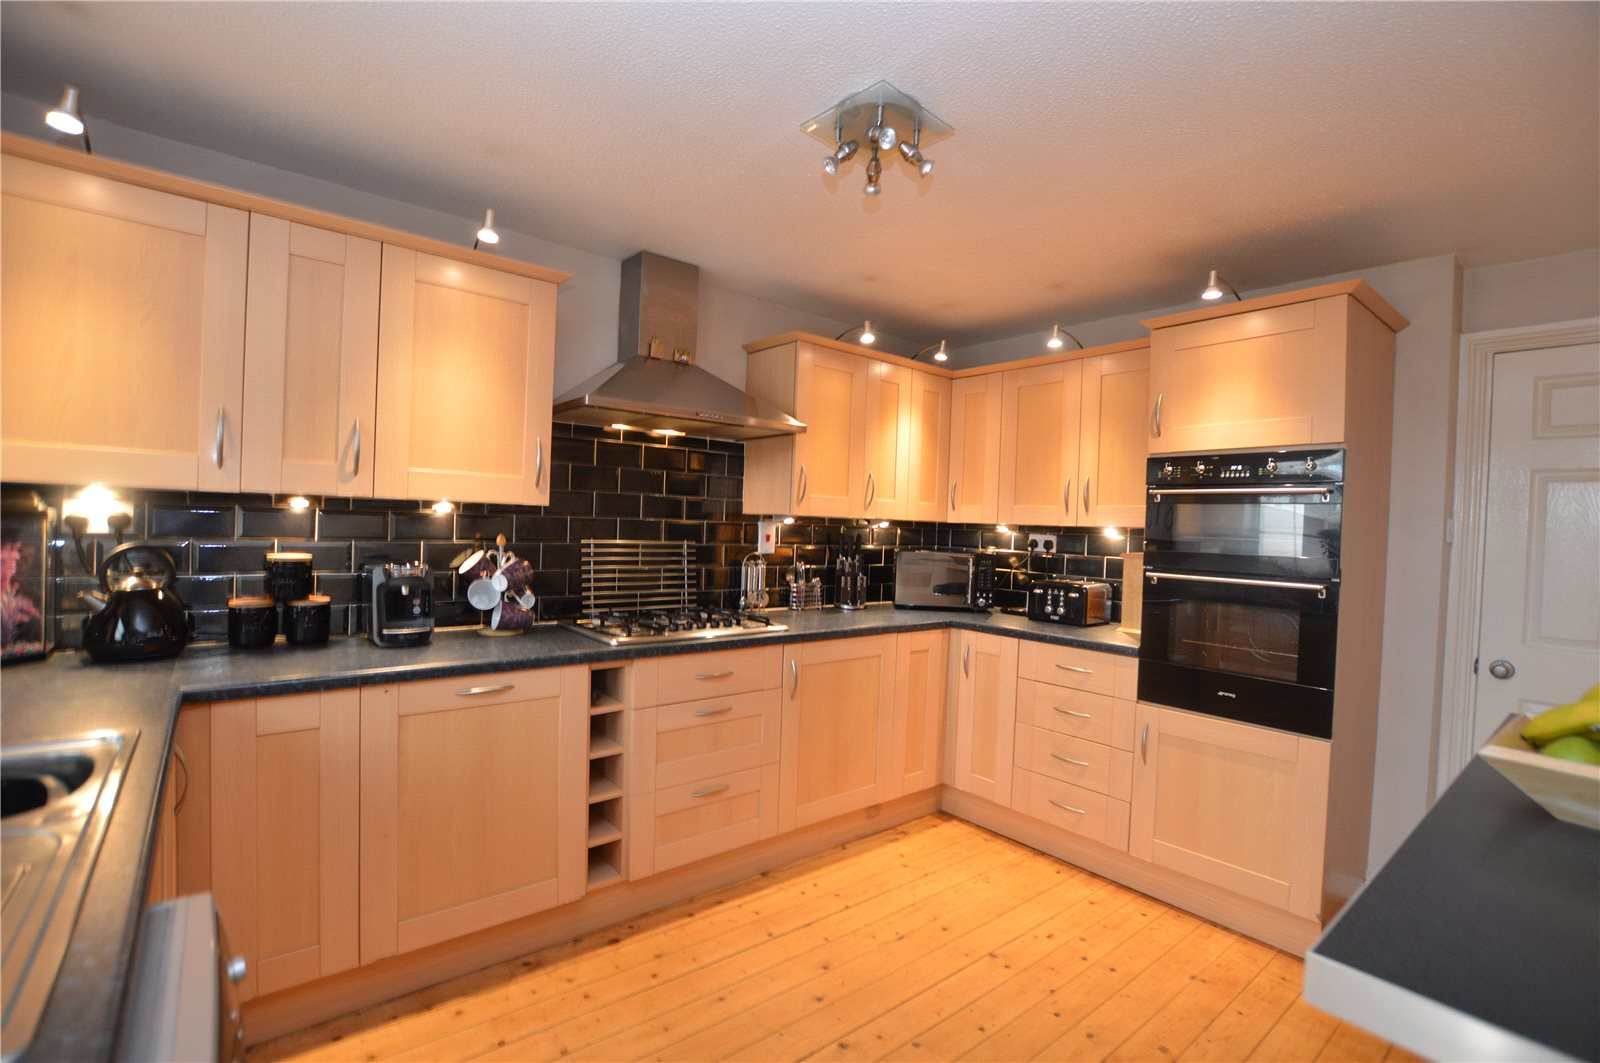 property for sale in Pudsey interior fitted modern kitchen